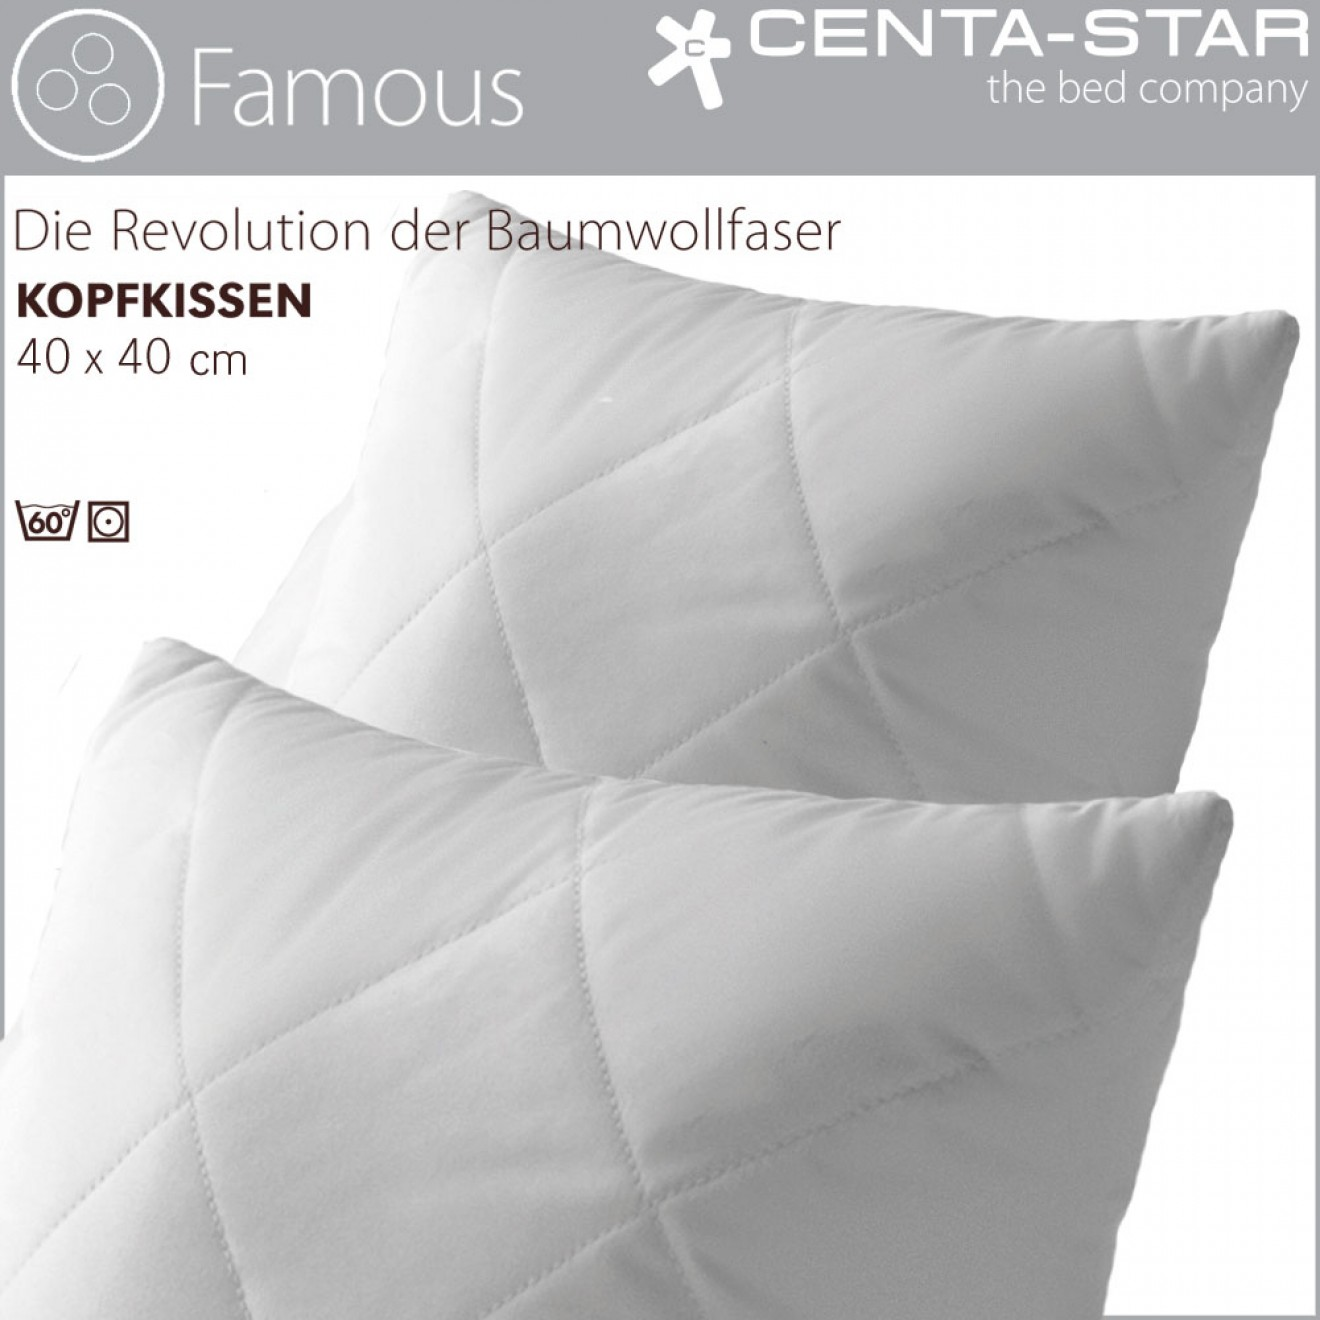 centa star famous kissen 40x40cm 1b ware centa star bettdecken kissen bettw sche g nstig. Black Bedroom Furniture Sets. Home Design Ideas